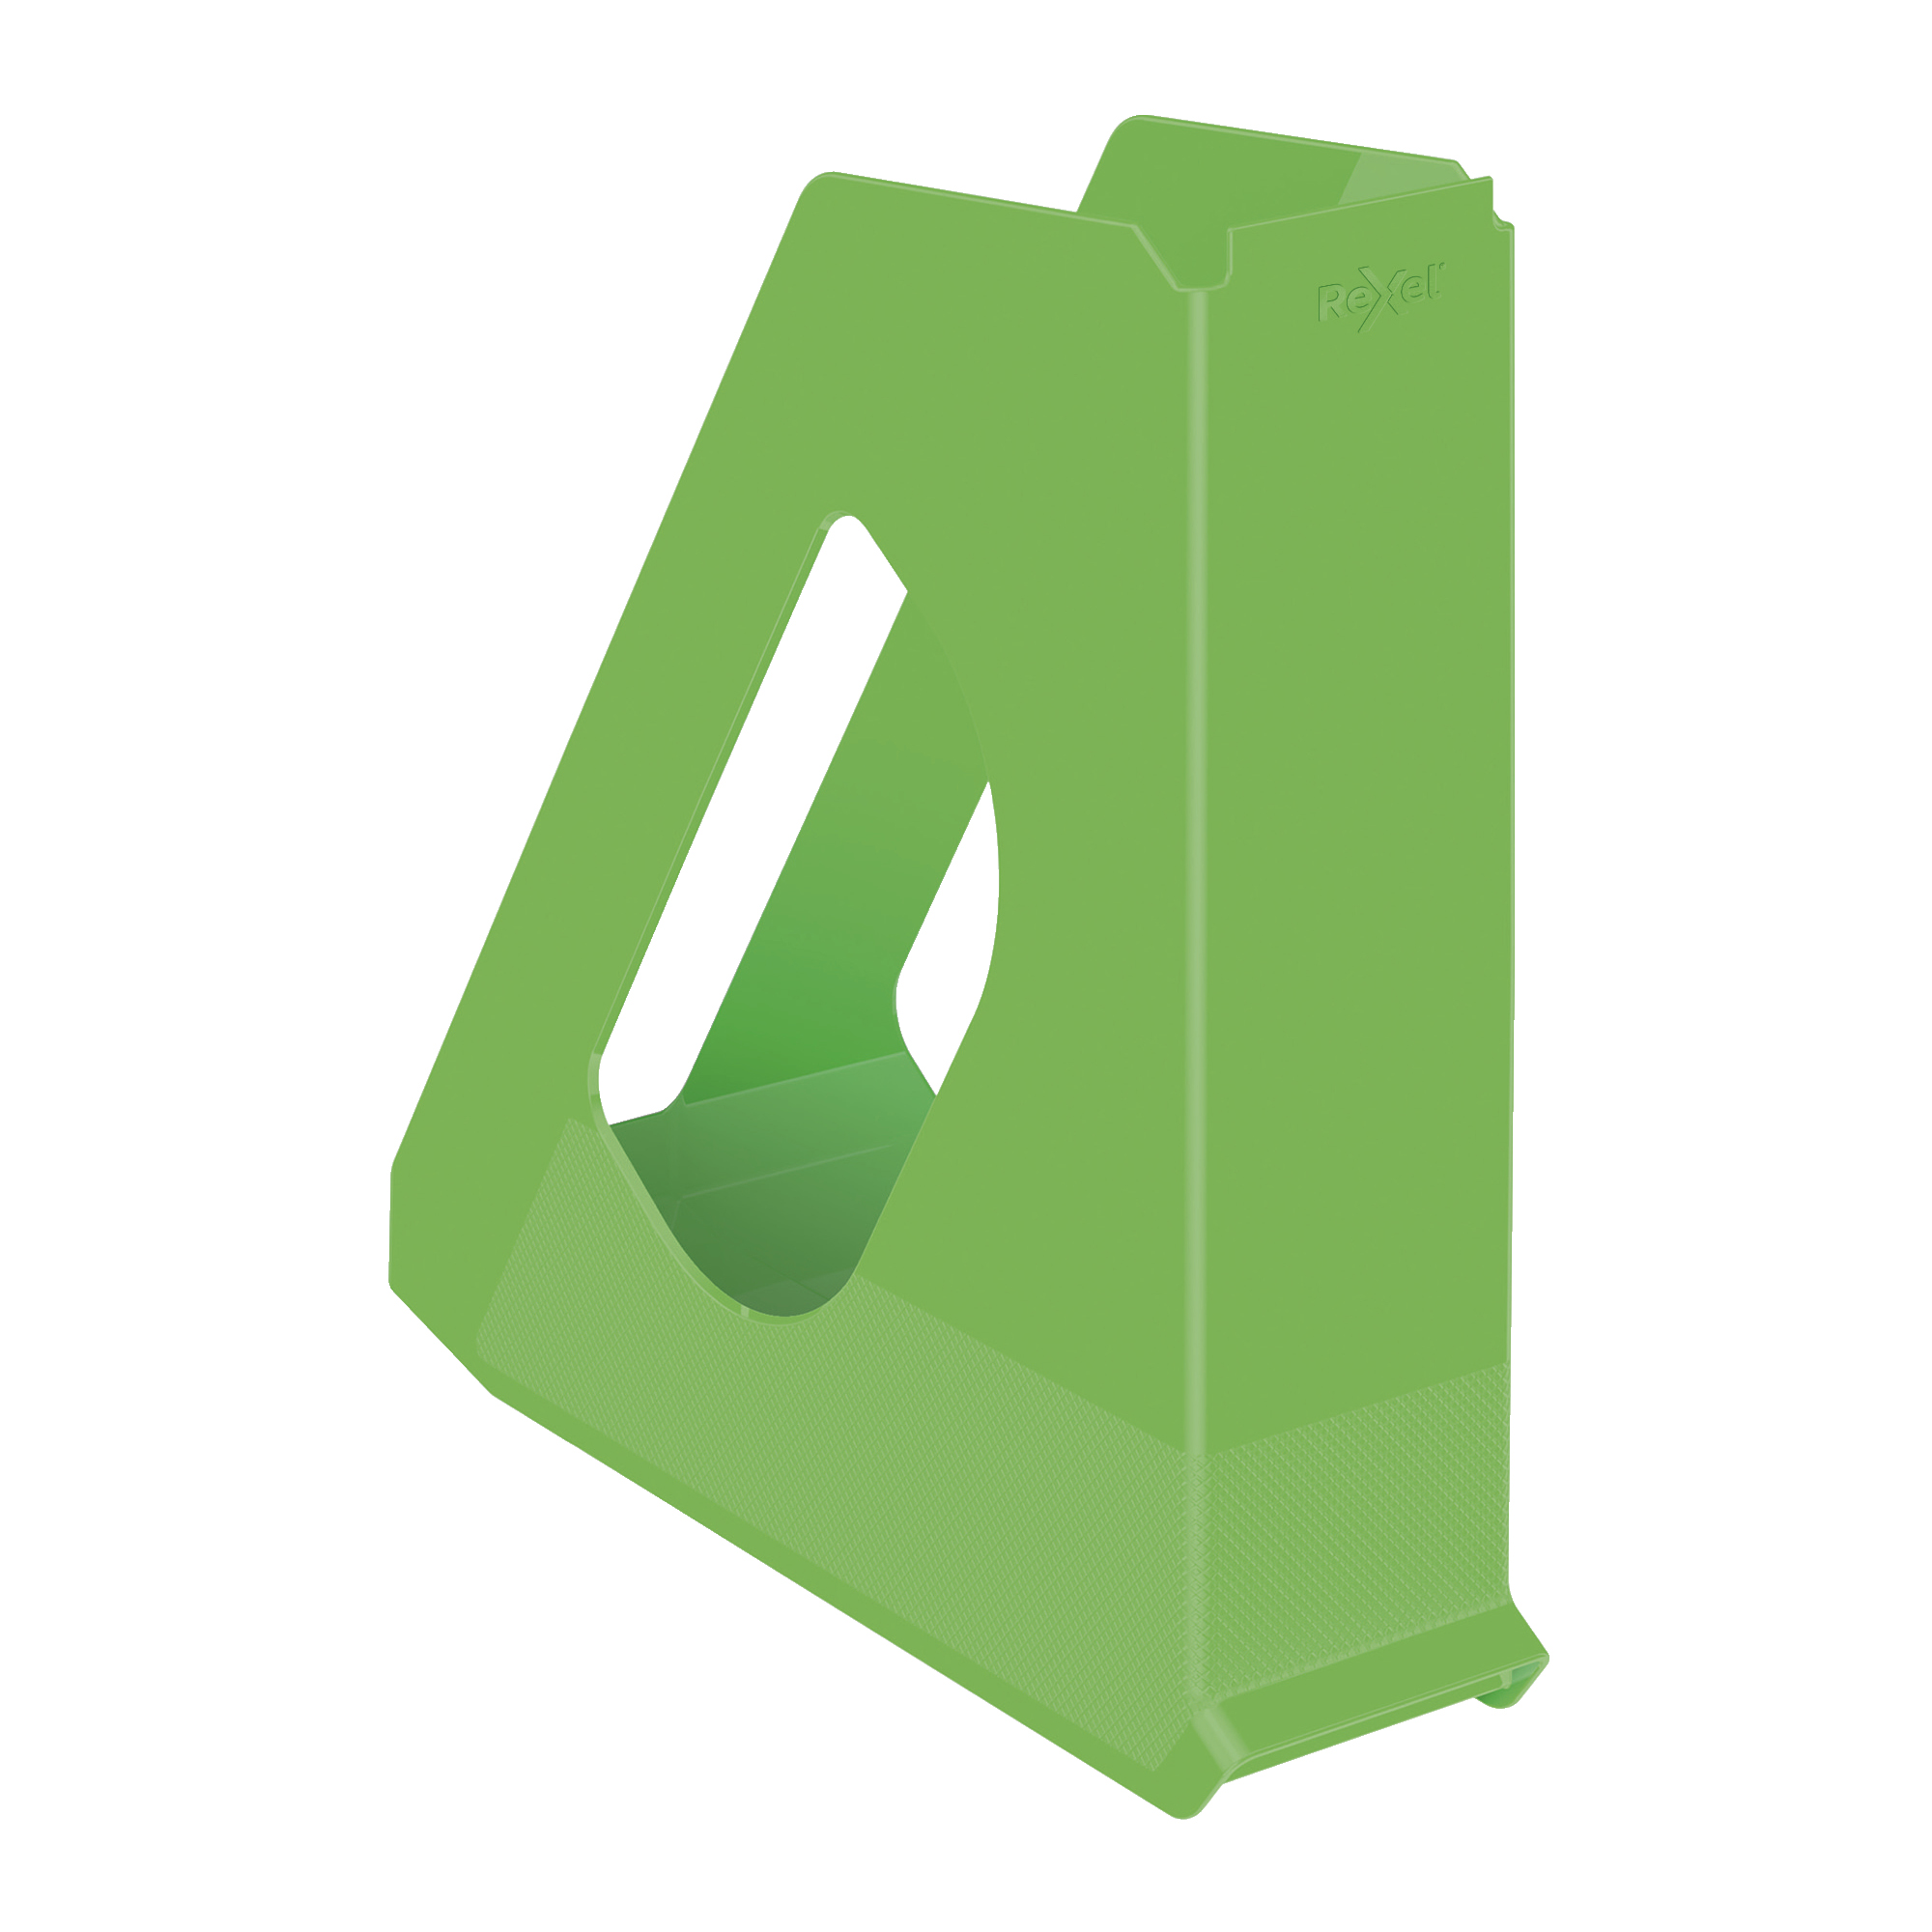 Rexel Choices Magazine File Capacity 60mm Green Ref 2115604